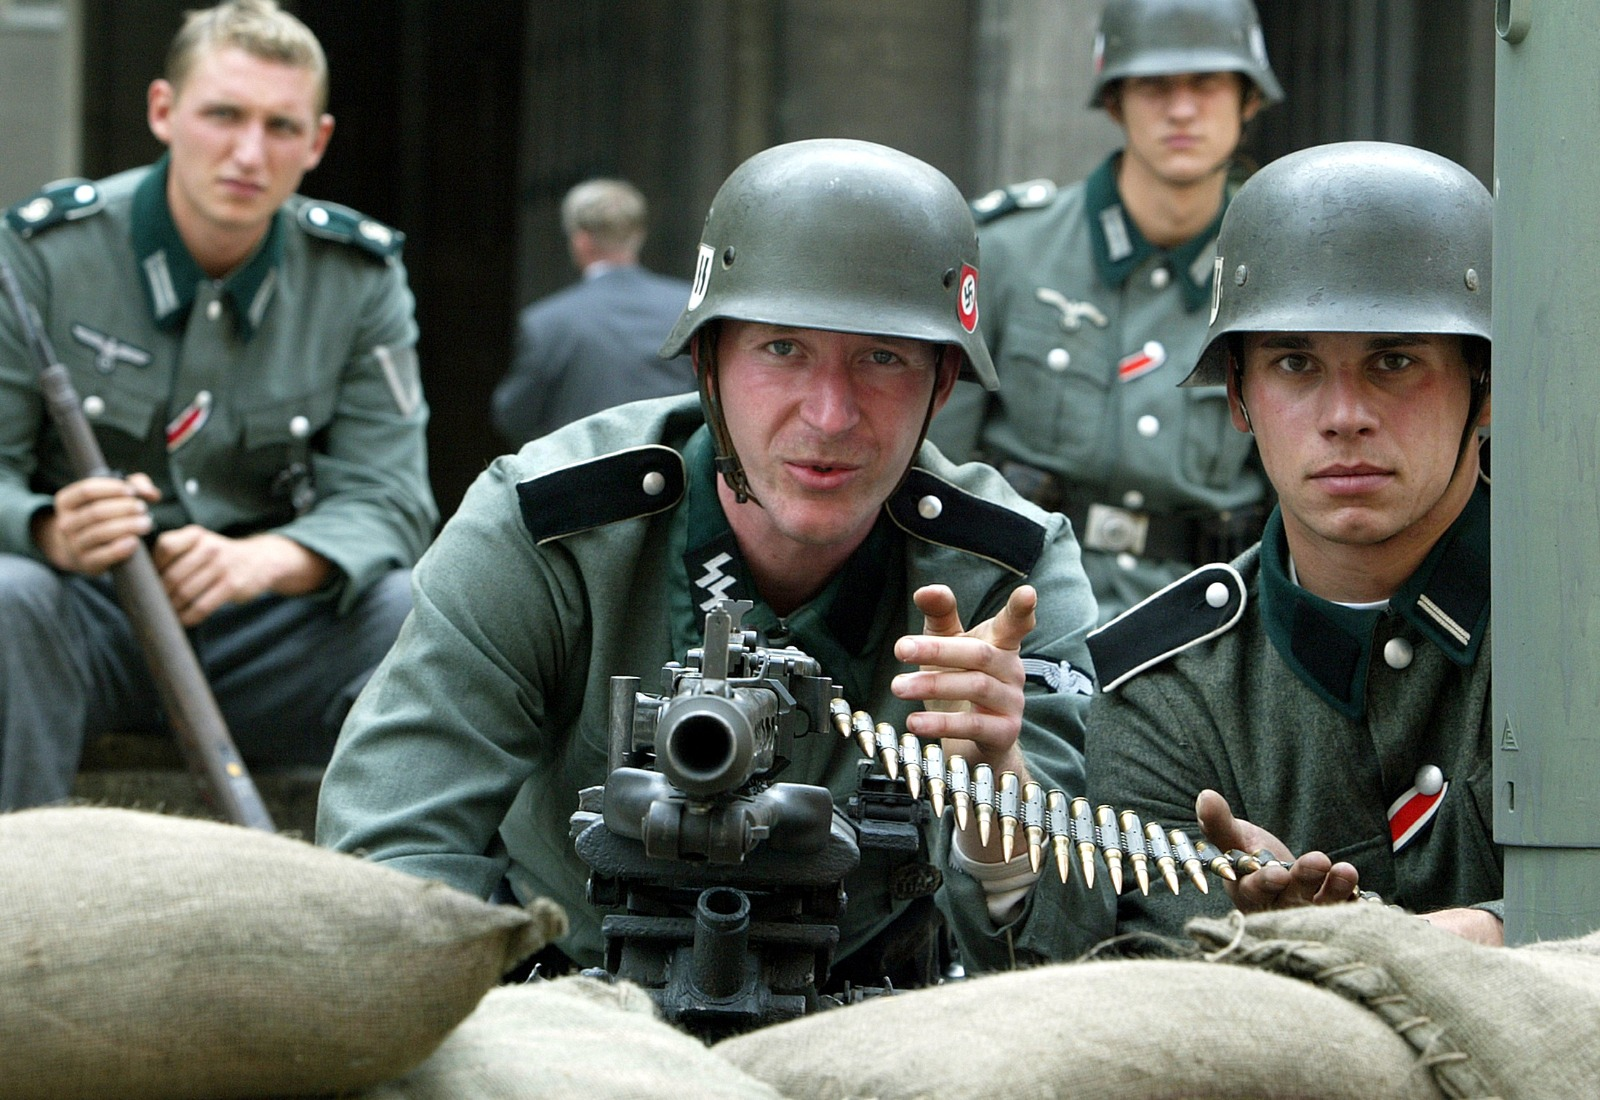 How Nazi Germany Could Have Won World War Two Without Having to Fight